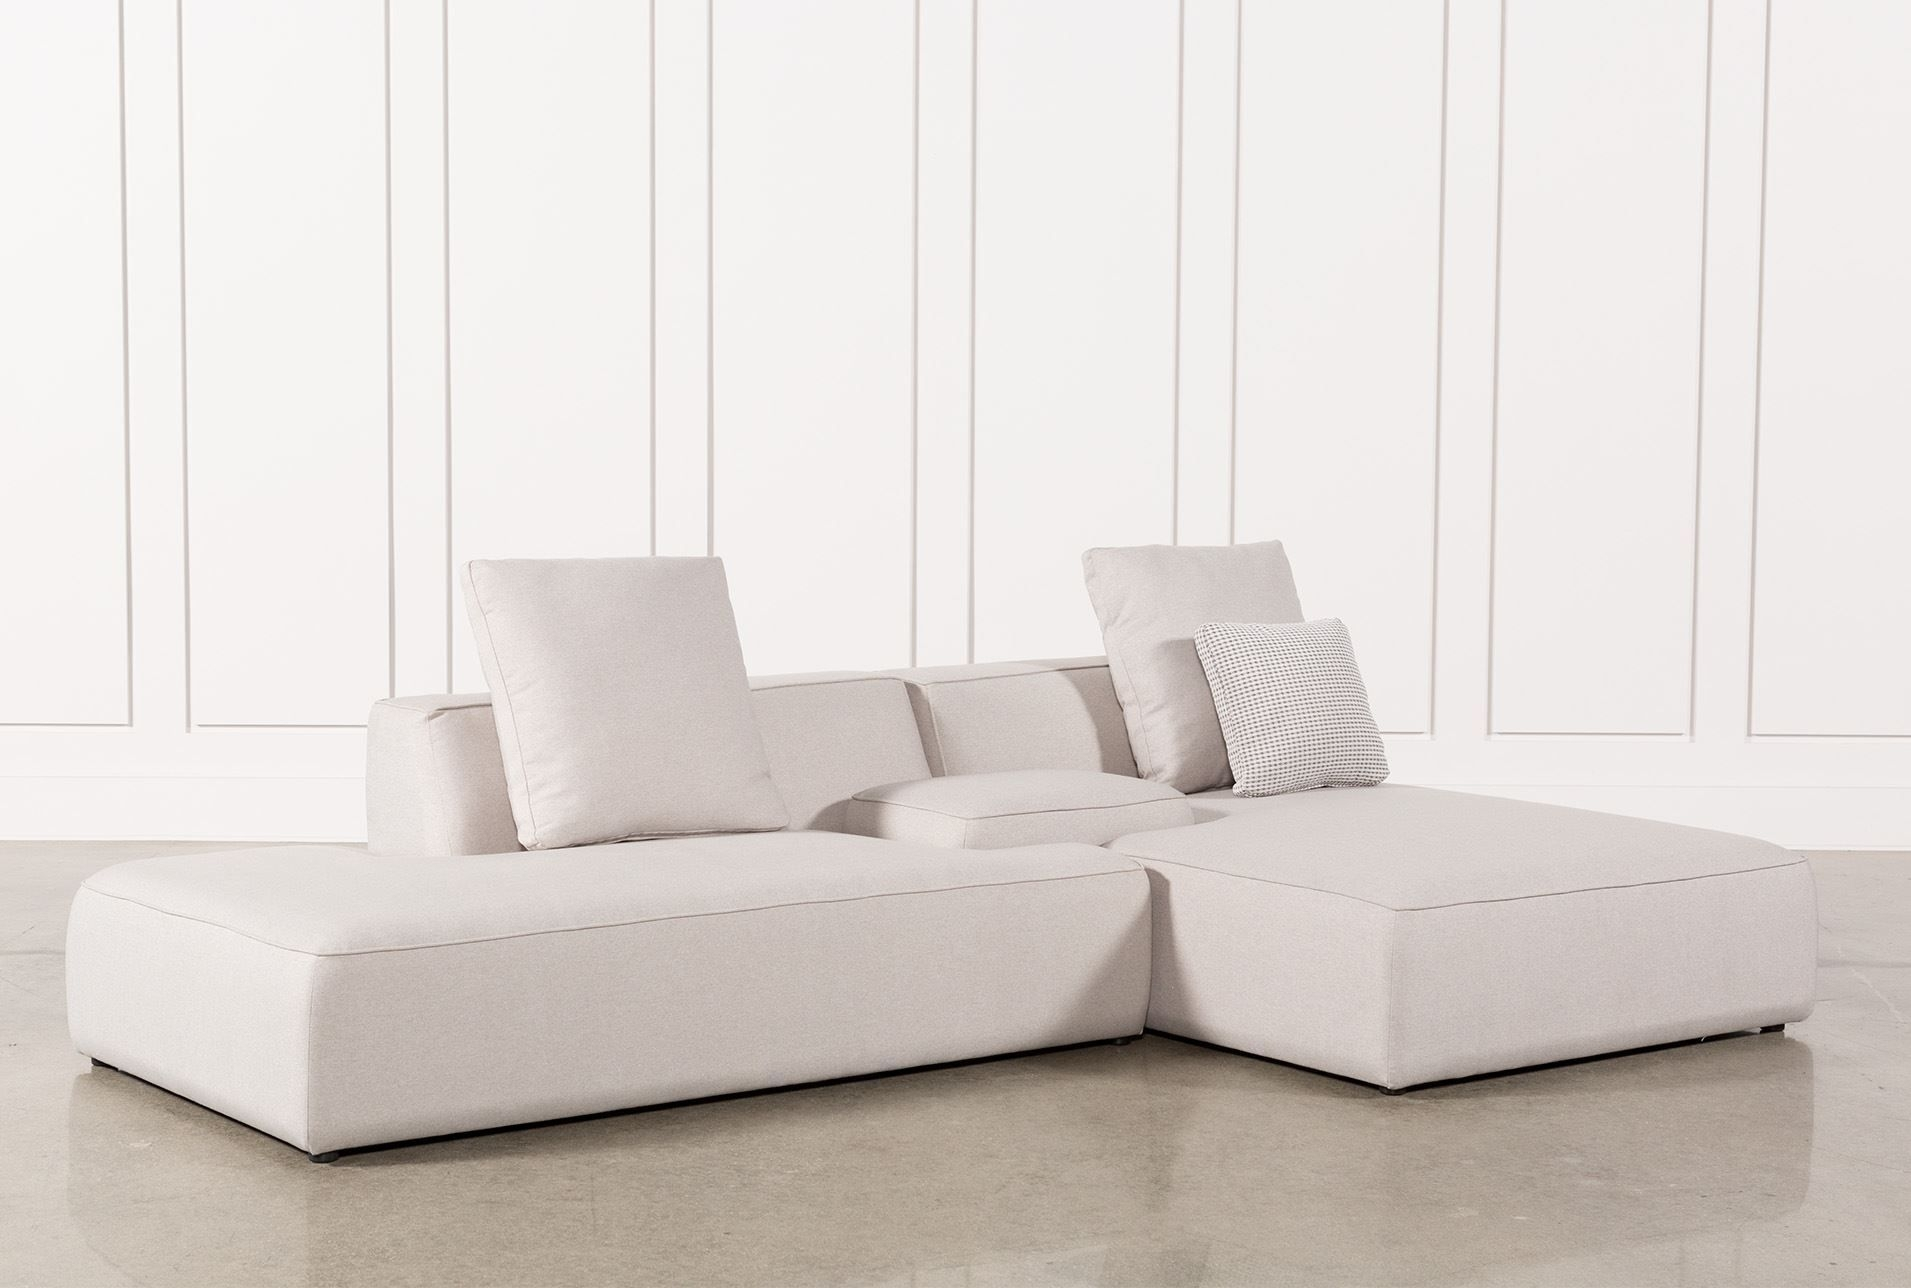 Maggie Light Grey 3 Piece Sectional W/raf Chaise & Solid Stool Throughout Aquarius Light Grey 2 Piece Sectionals With Laf Chaise (View 7 of 30)